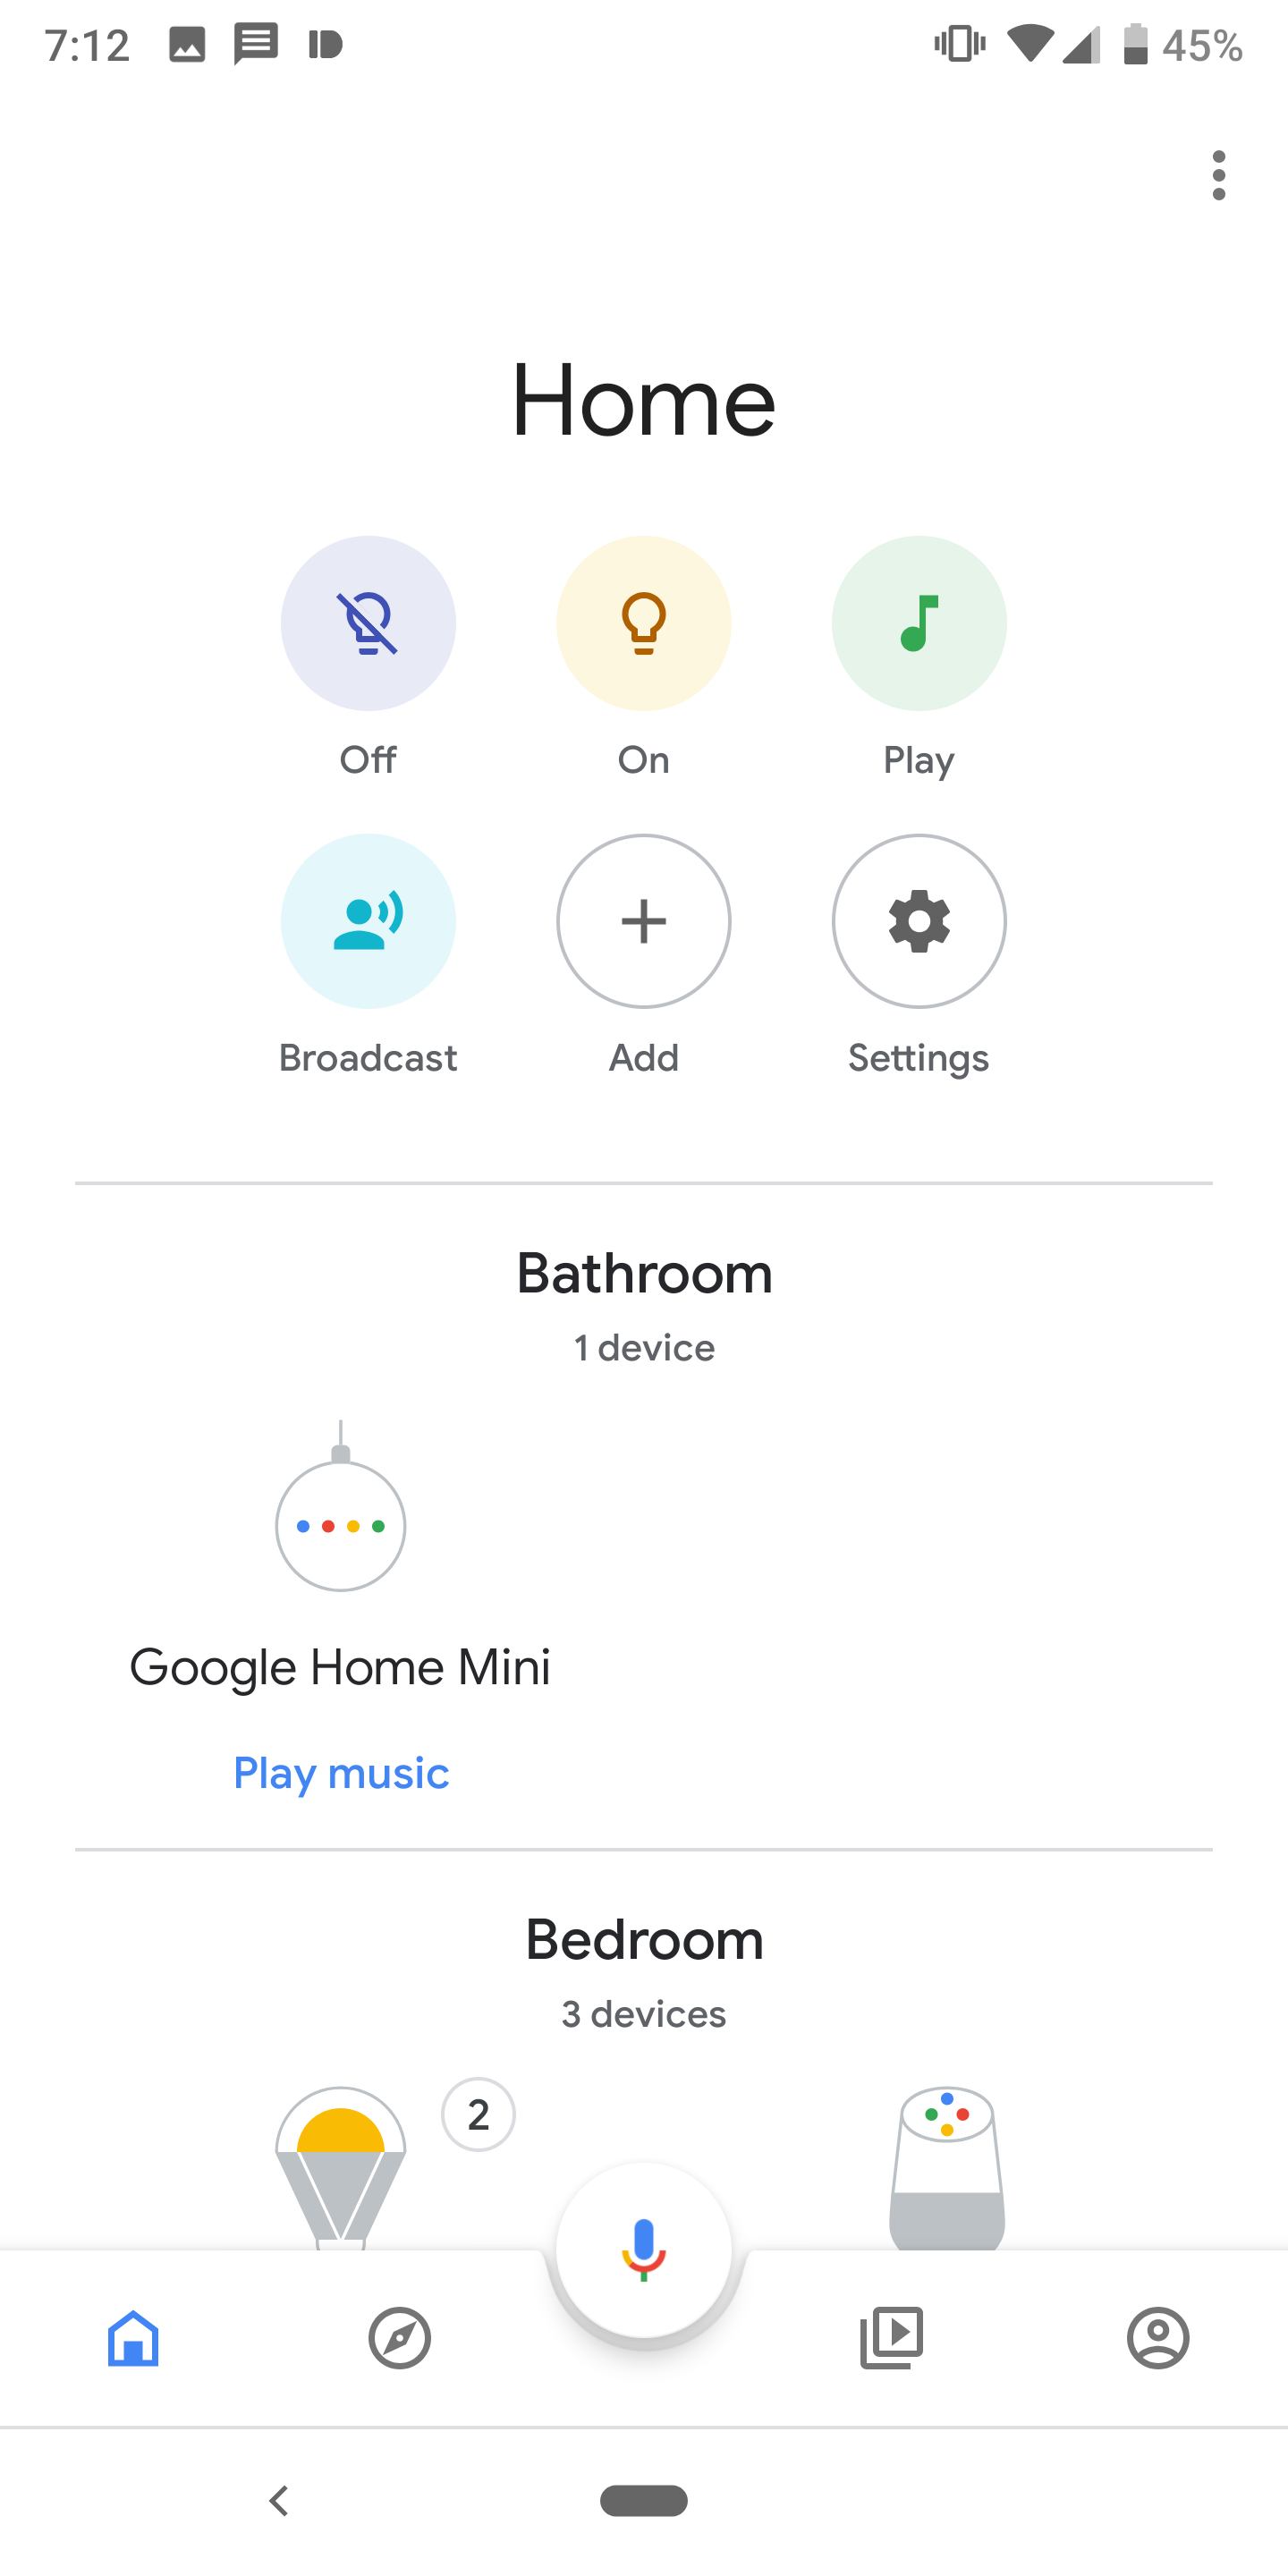 Google Home 2 6 adds smart control, Material Theme, more - 9to5Google